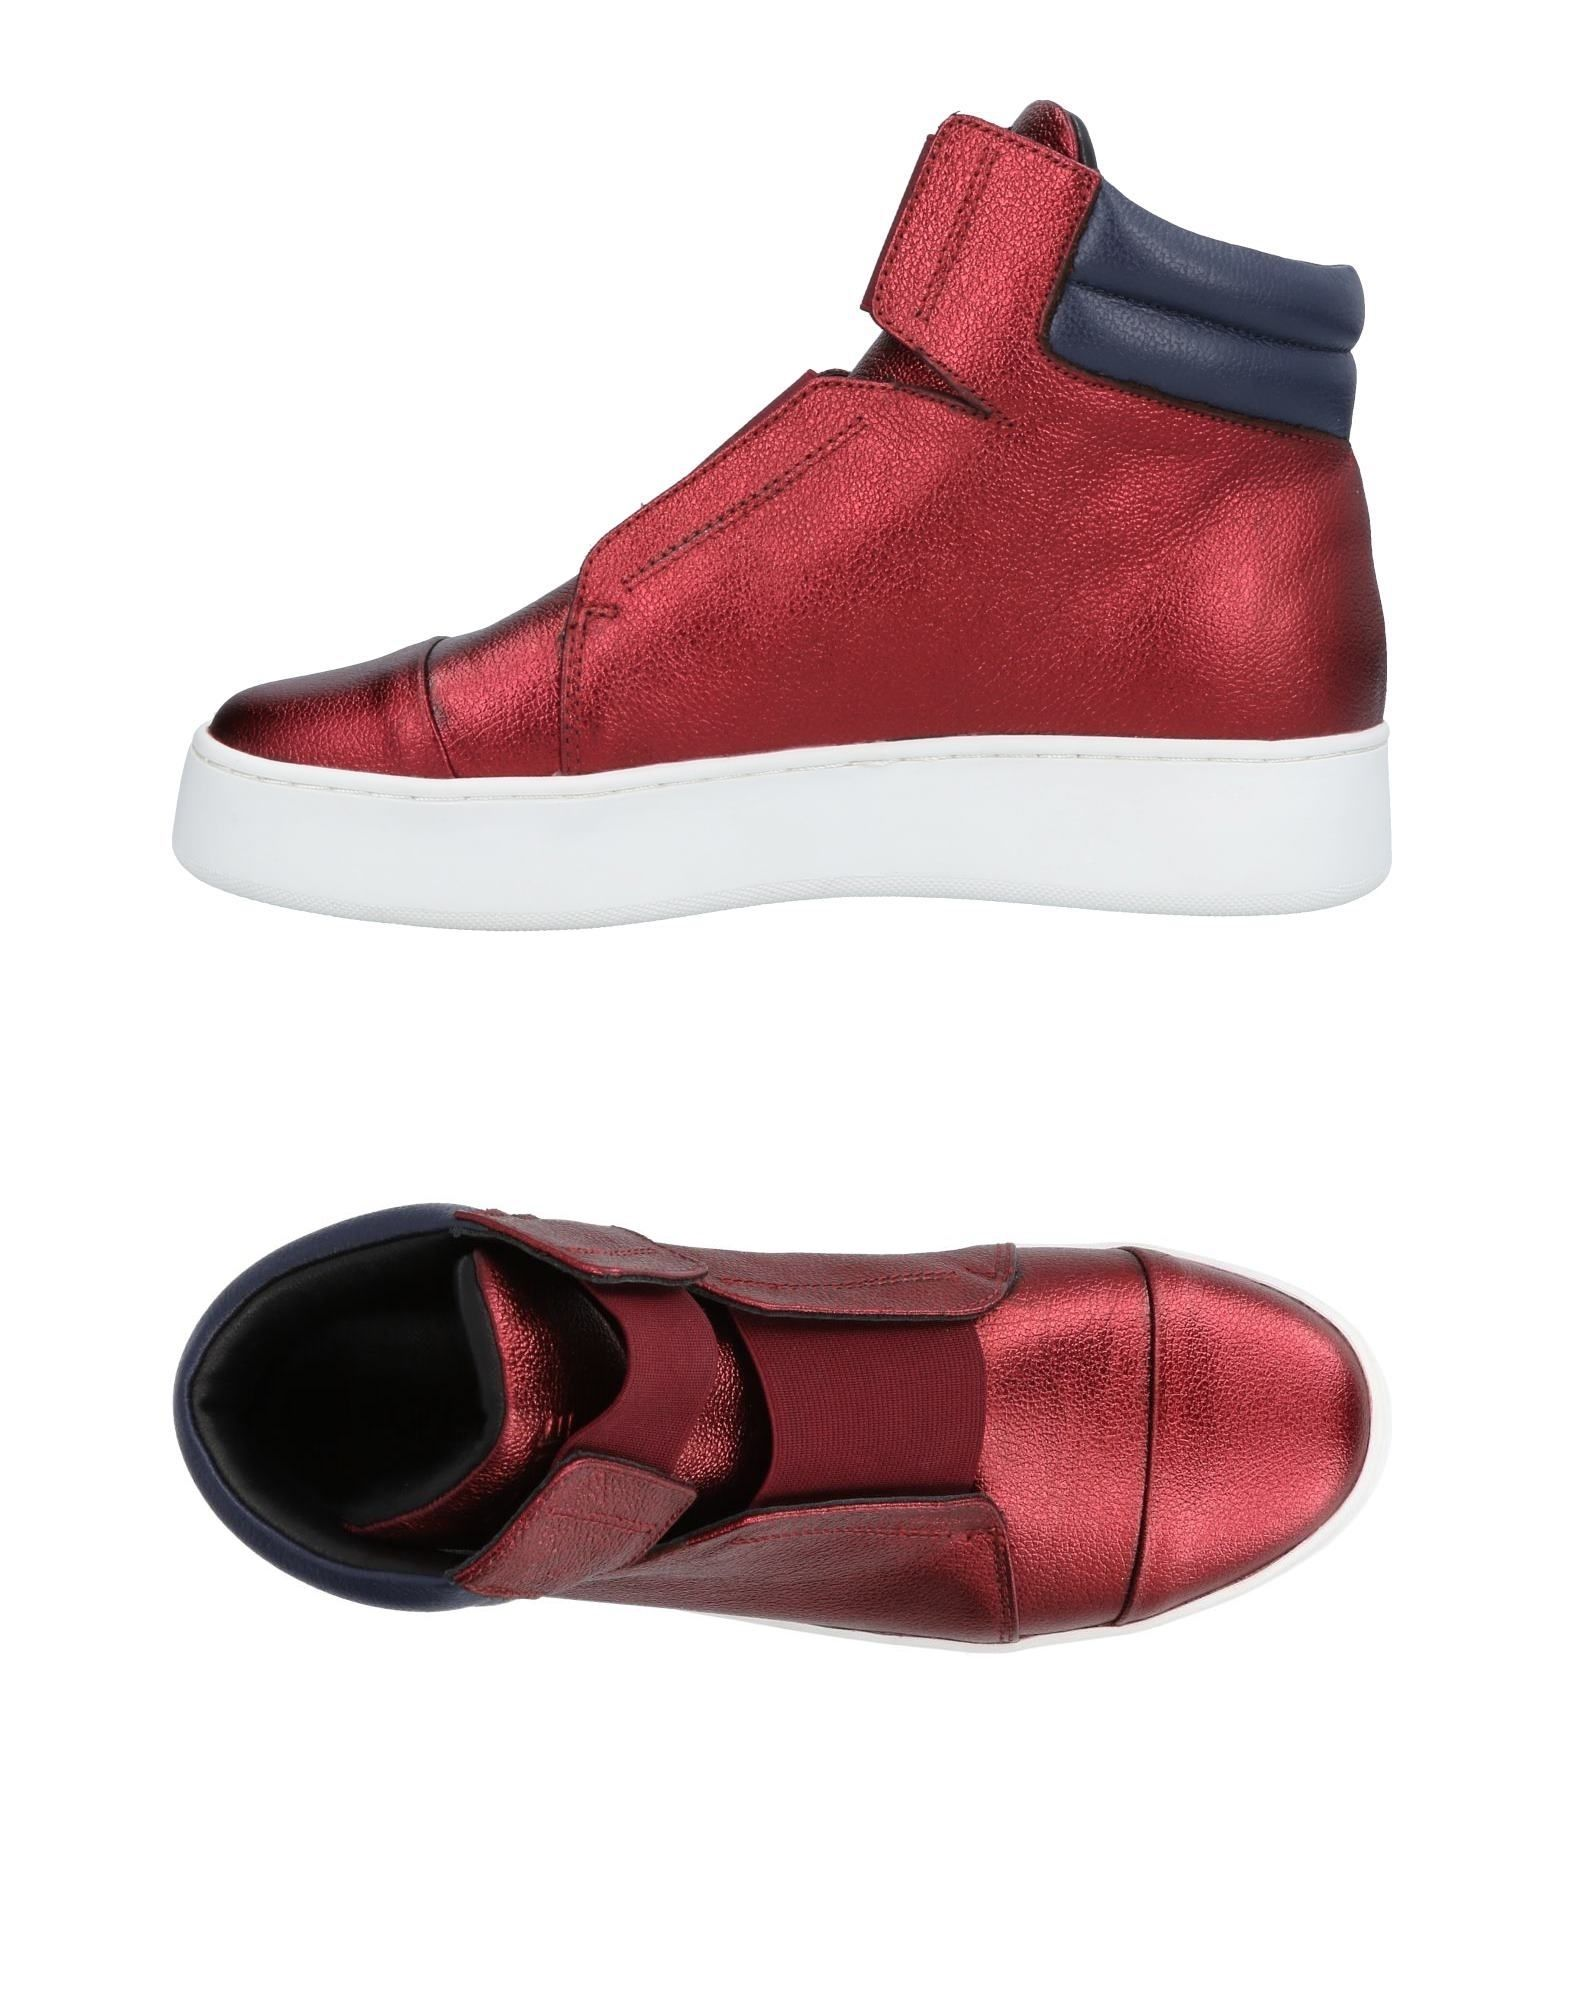 A buon mercato Sneakers A7eijē Donna - 11456034DS